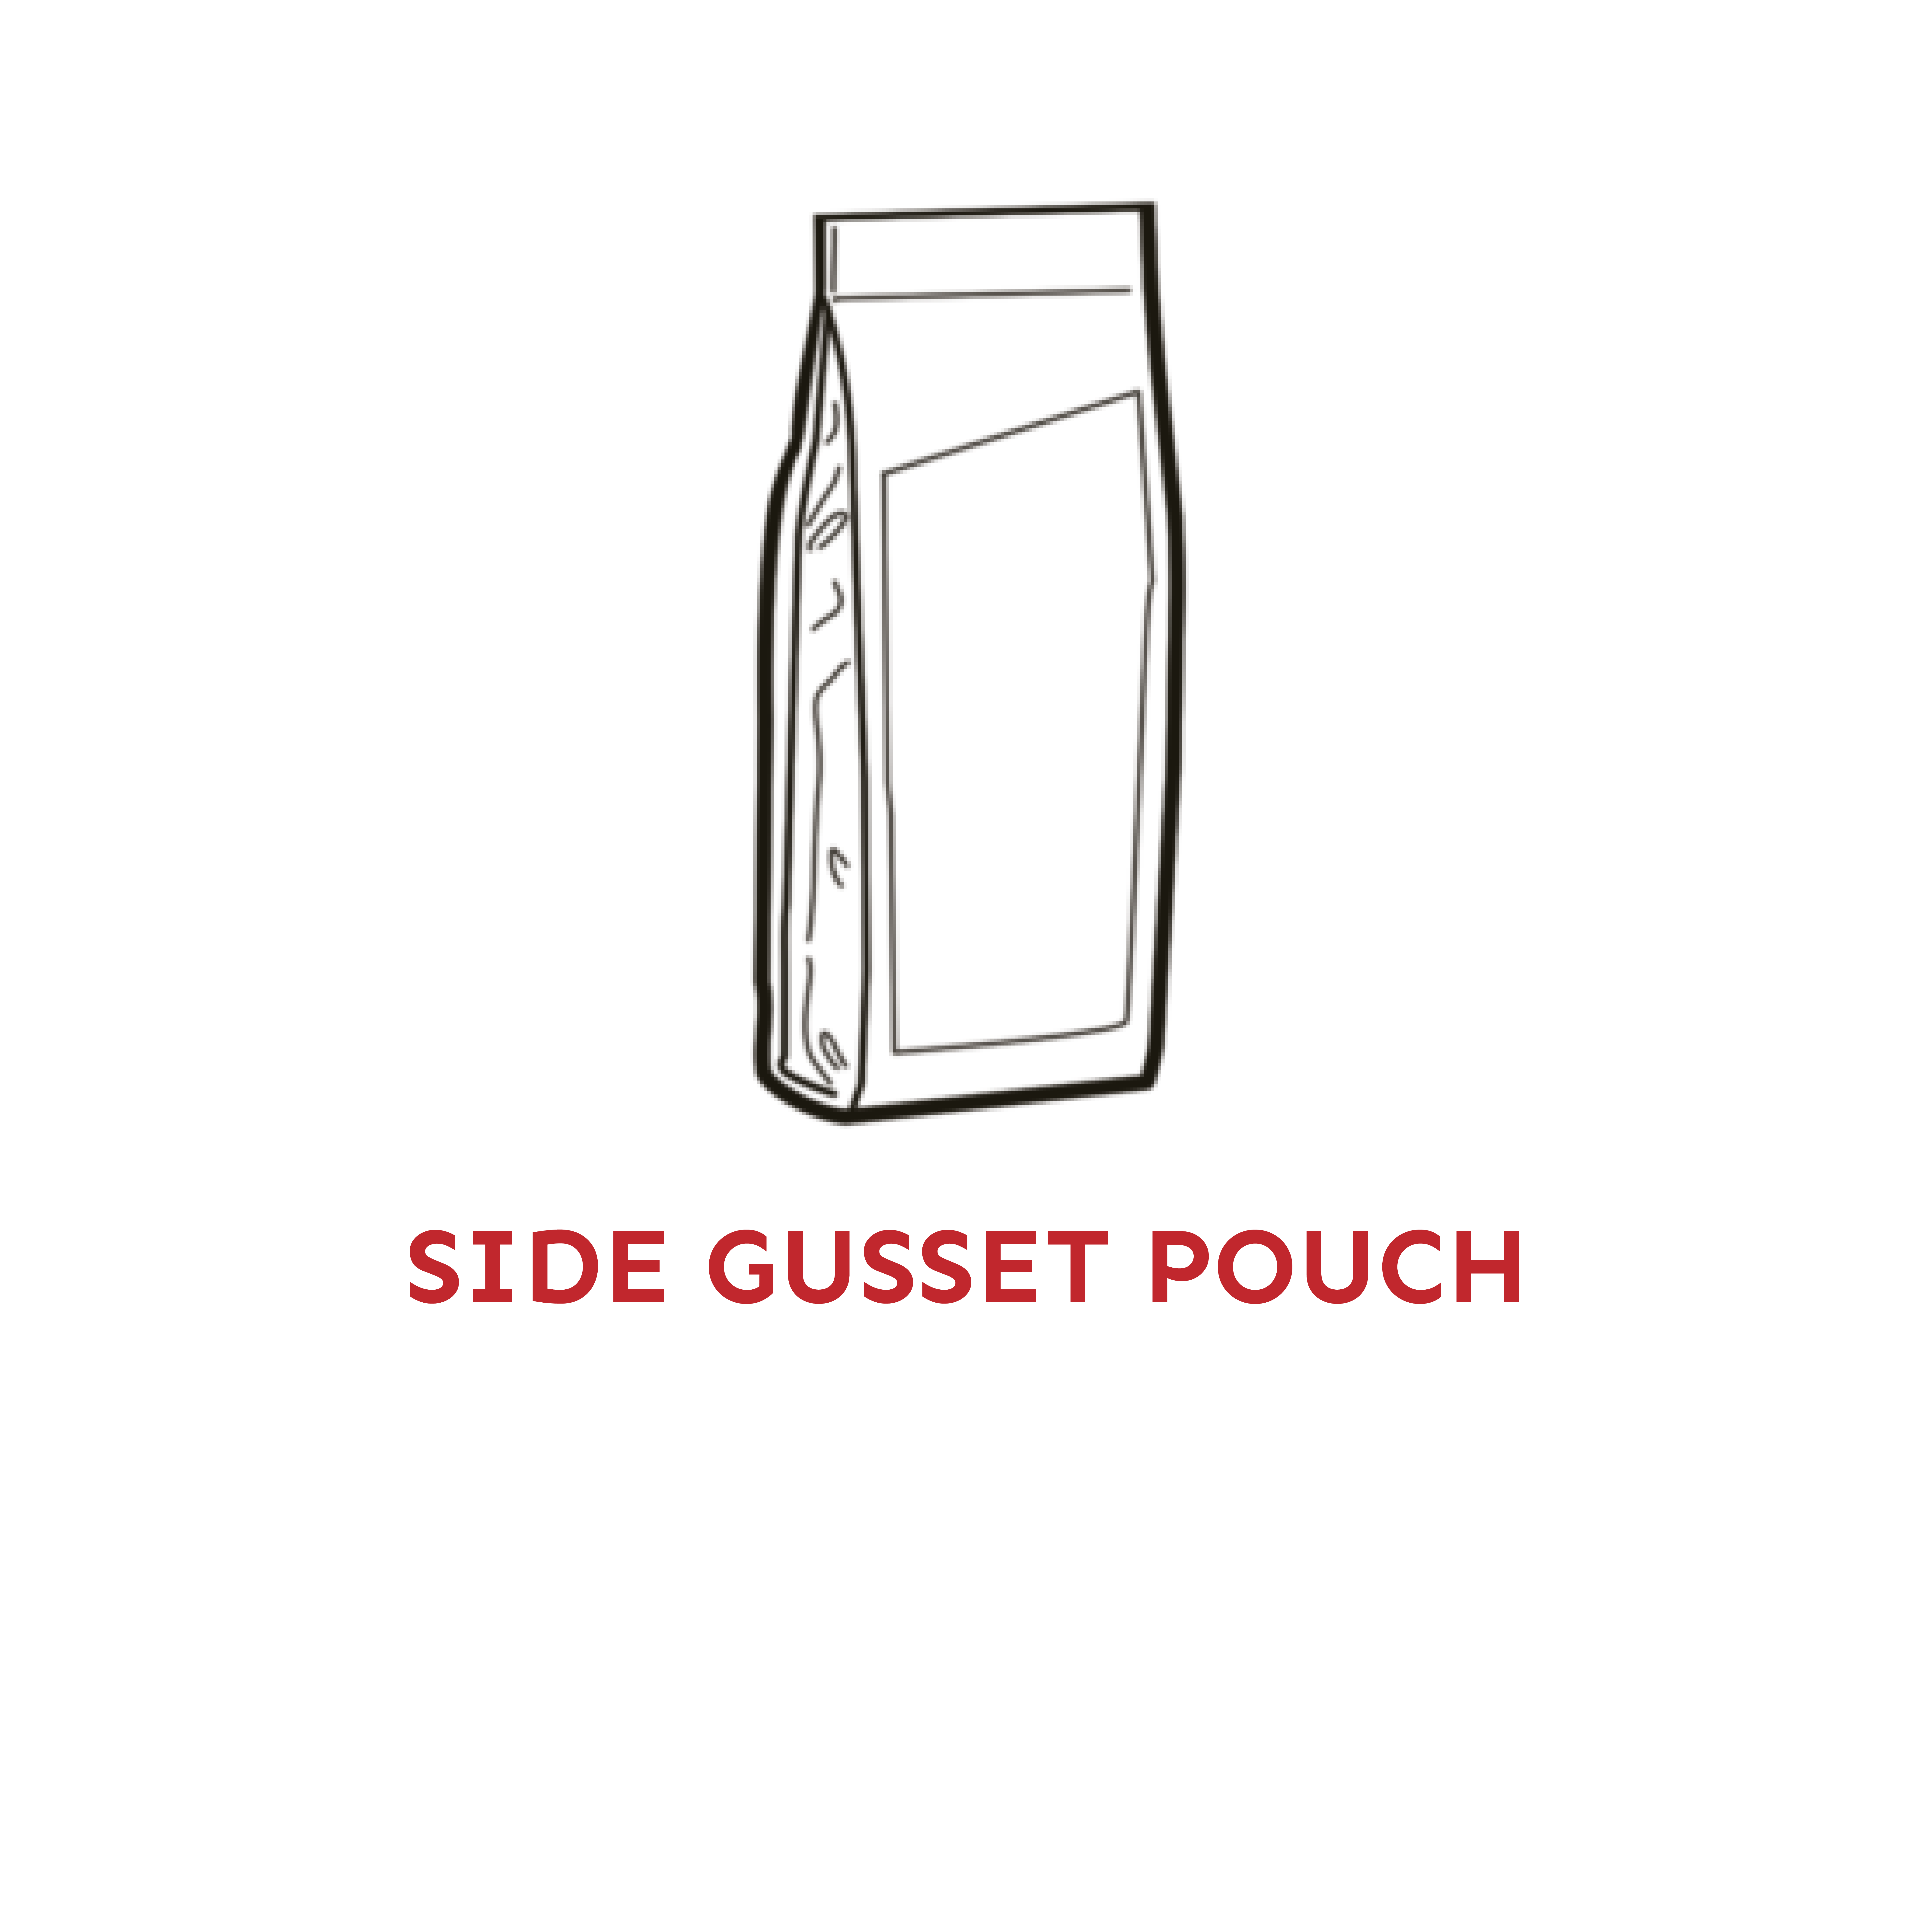 Side Gusset Pouch Packaging